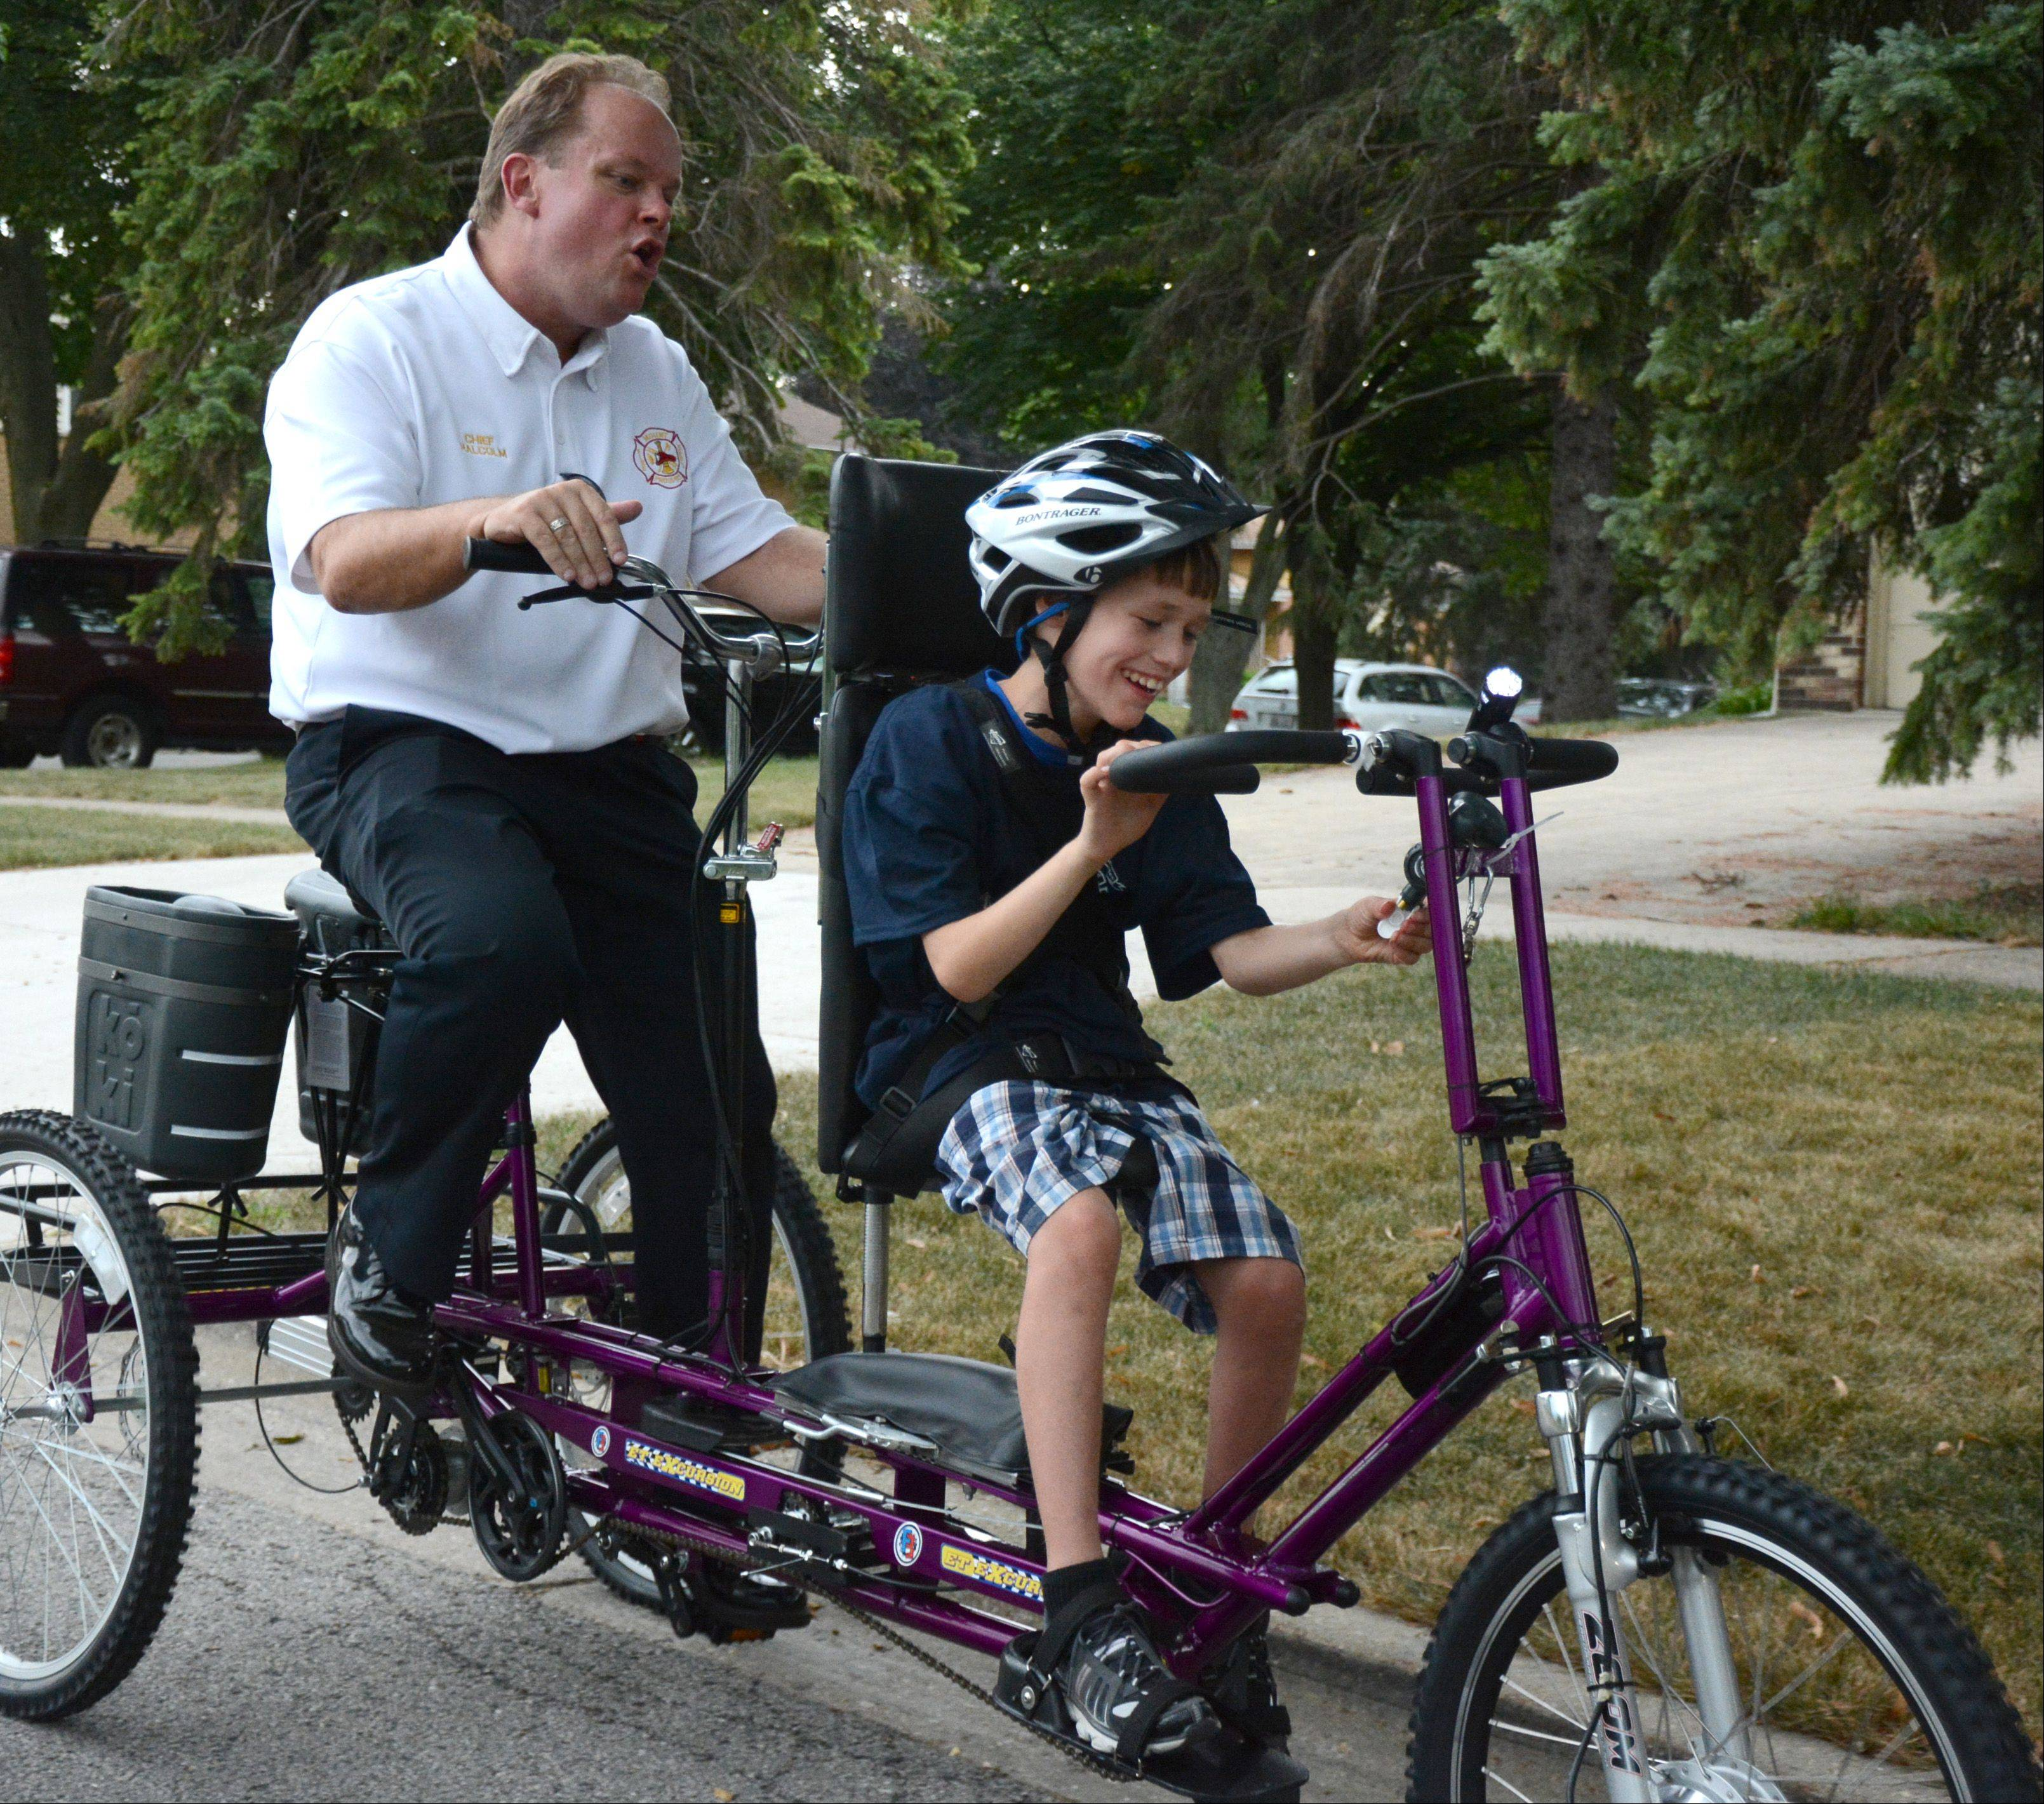 Mount Prospect Fire Chief John Malcolm and Zachary Jakubowski, 11, of Mount Prospect take a ride on Zachary's new adaptive bicycle that came with a fire truck horn Friday.